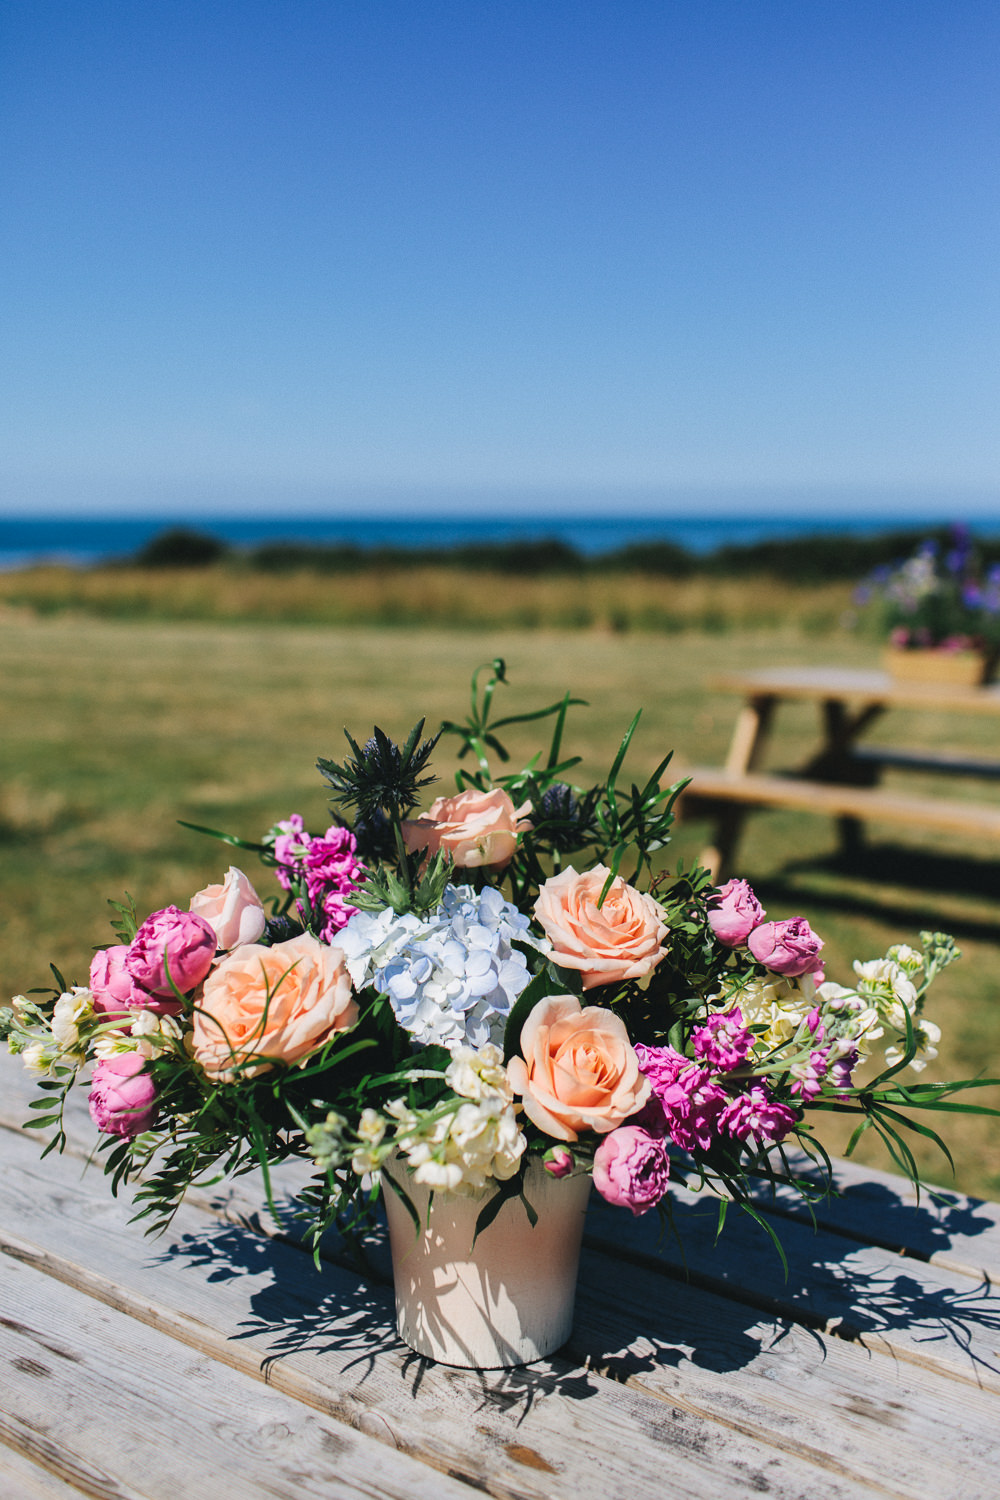 Flowers Floral Thistle Sea Holly Peach Rose Pink Blue Bach Wen Farm Wedding Jessica O'Shaughnessy Photography